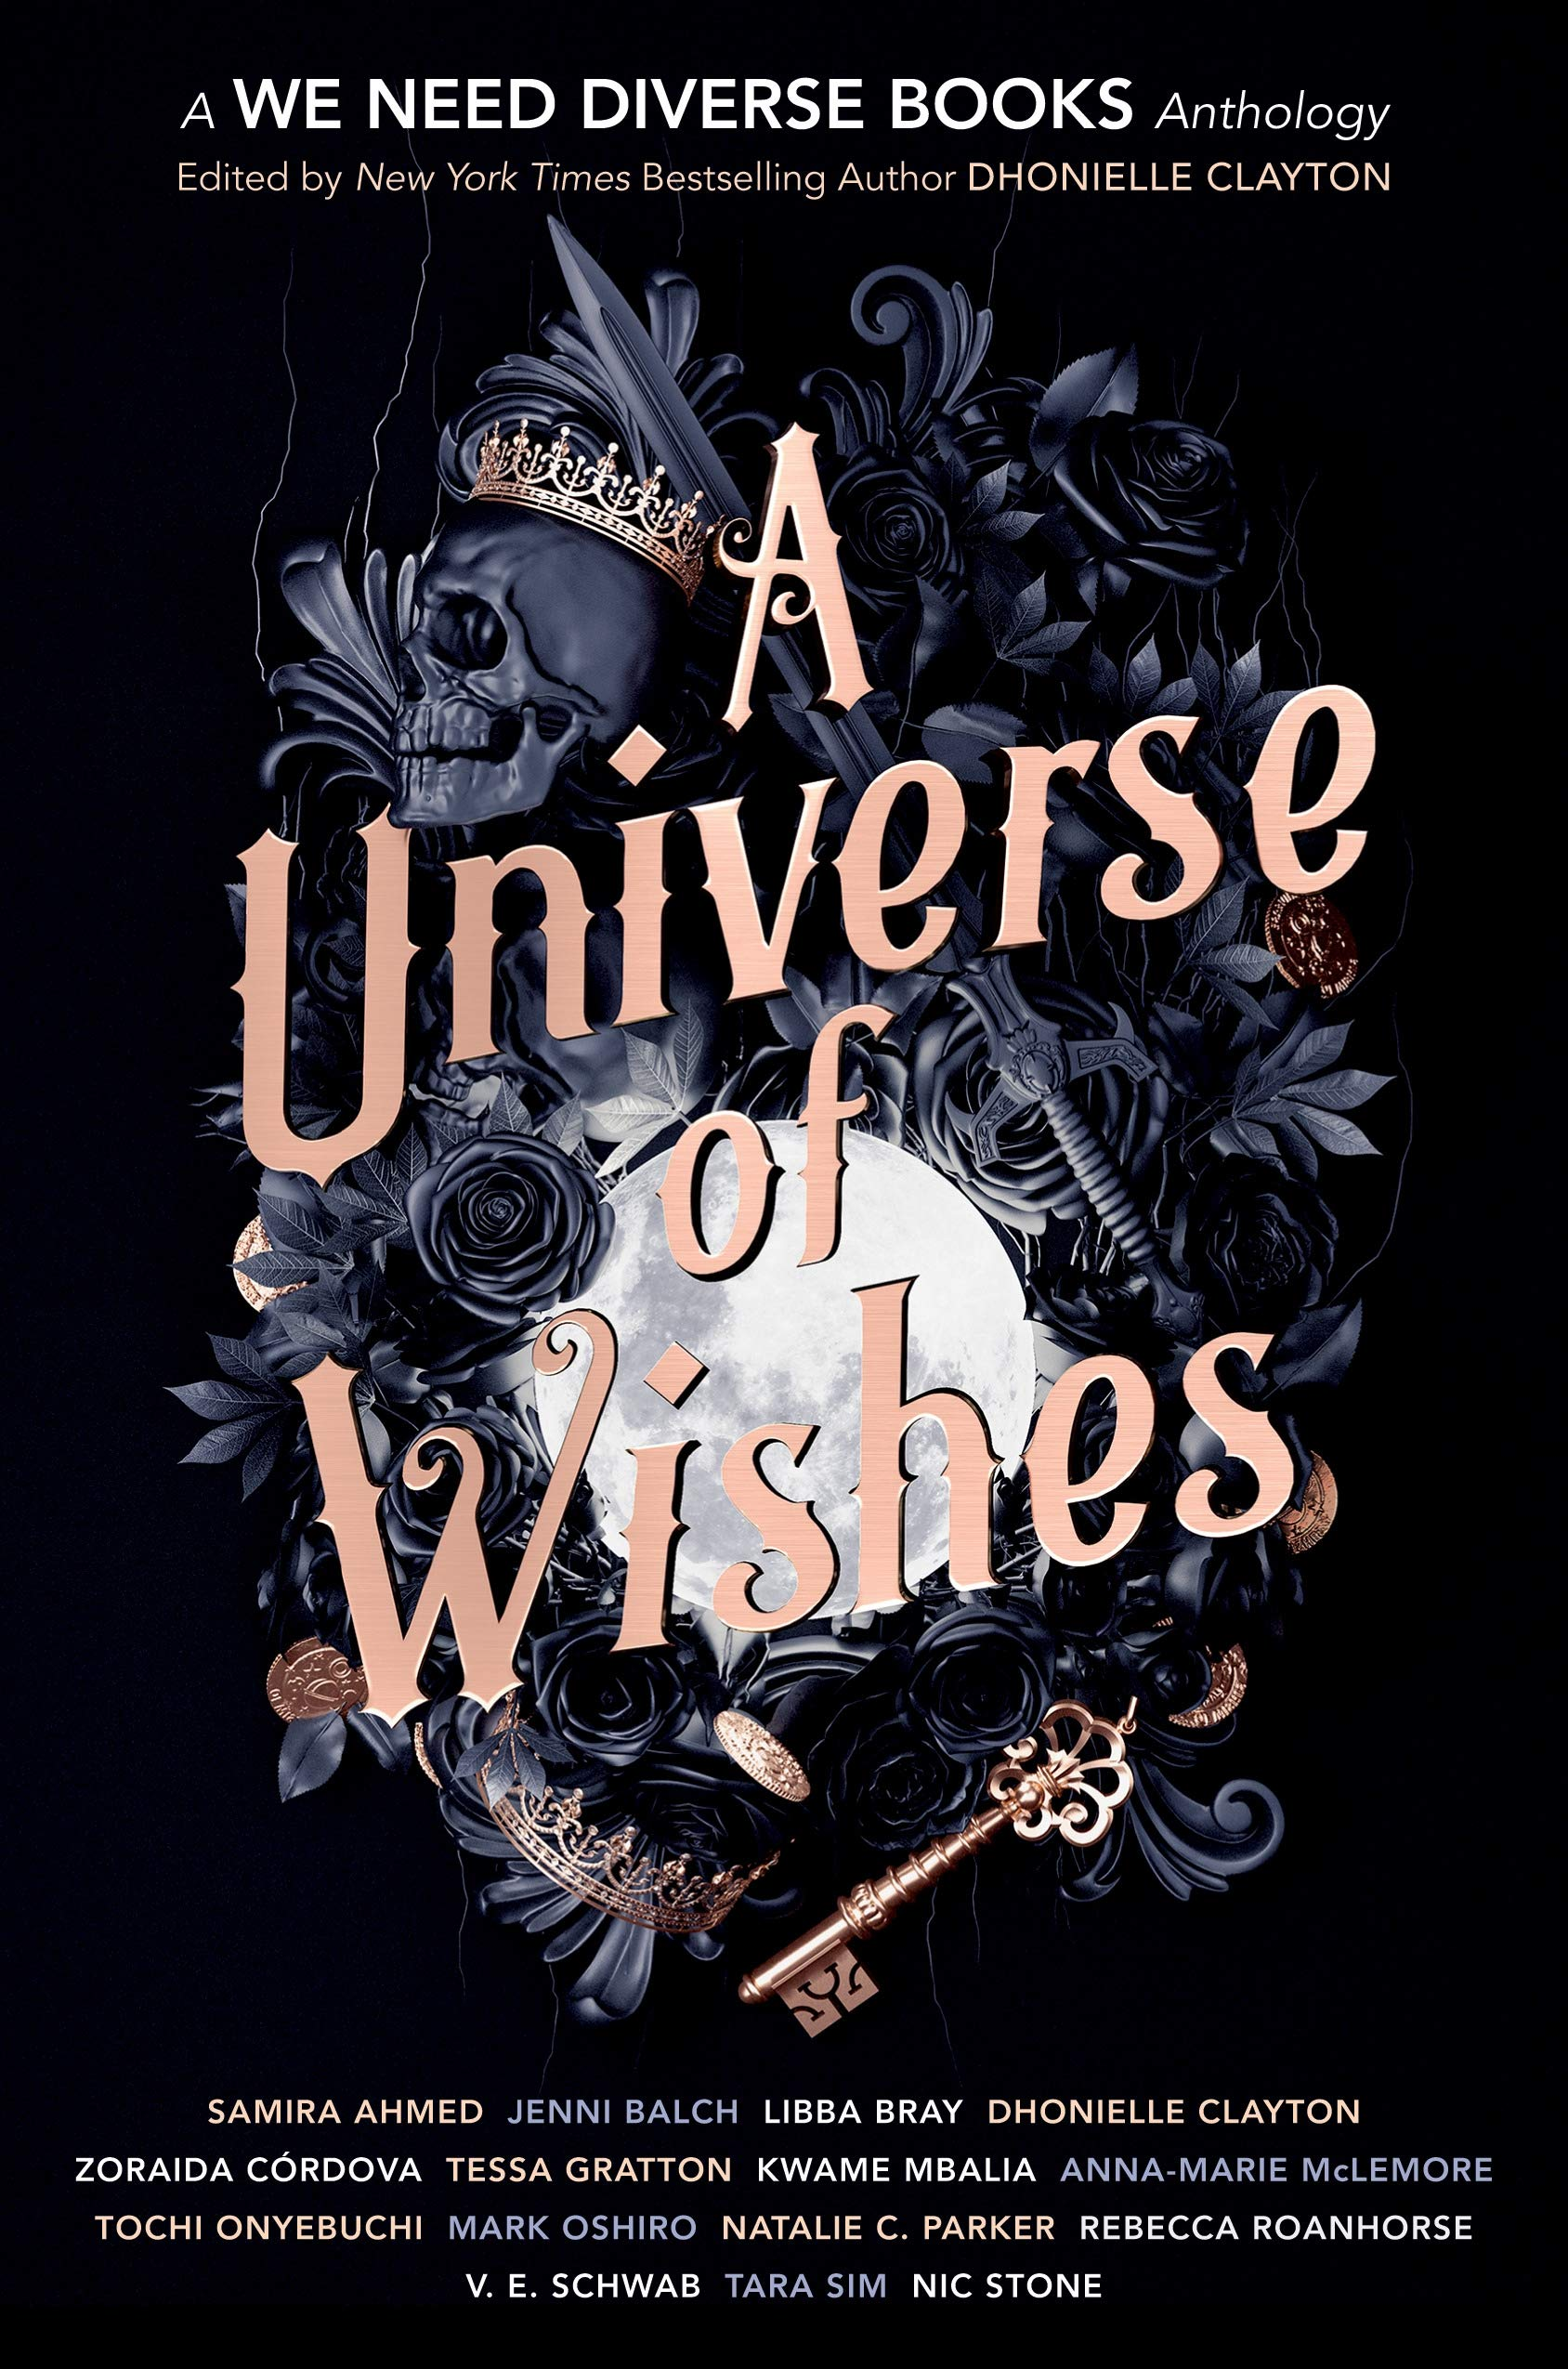 Amazon.com: A Universe of Wishes: A We Need Diverse Books Anthology  (9781984896209): Clayton, Dhonielle: Books